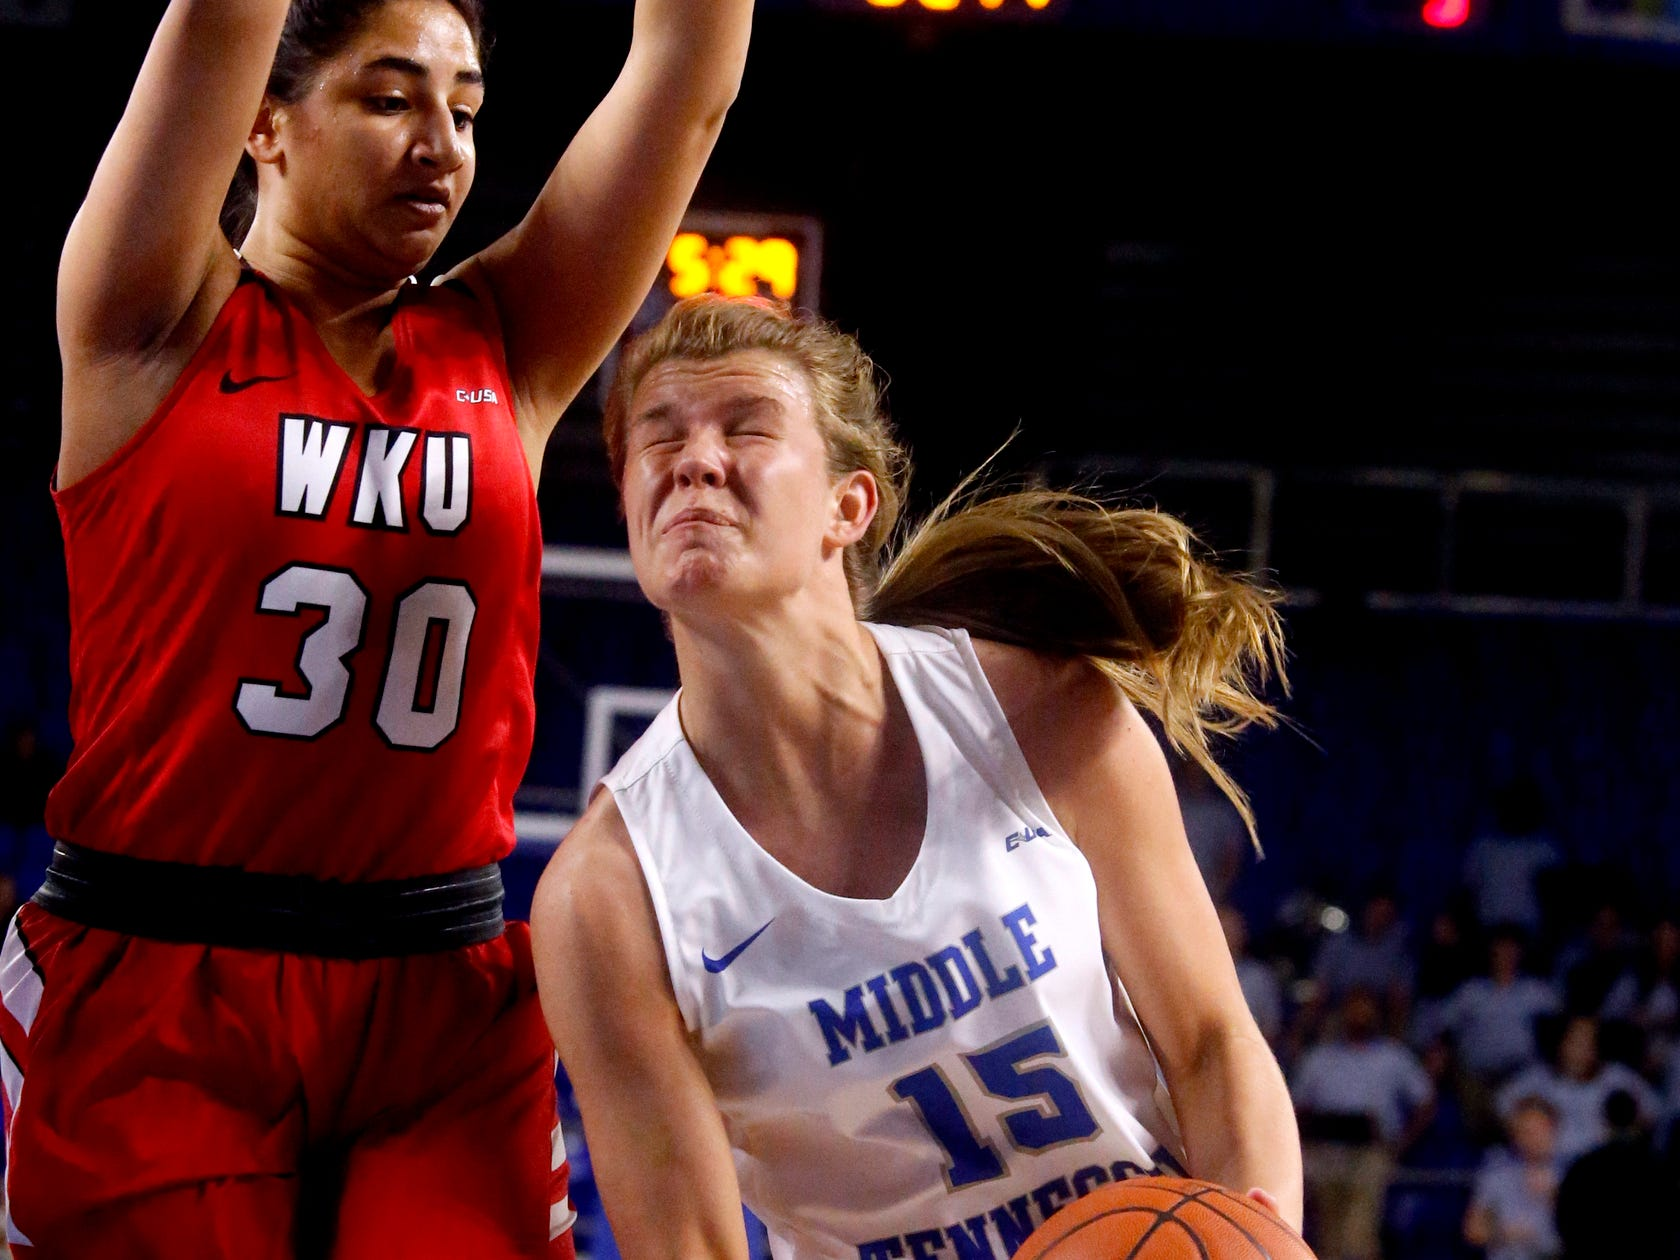 MTSU's guard Anna Jones (15) goes up for a shot as Western's guard Meral Abdelgawad (30) guards her on Thursday, Feb. 14, 2019.